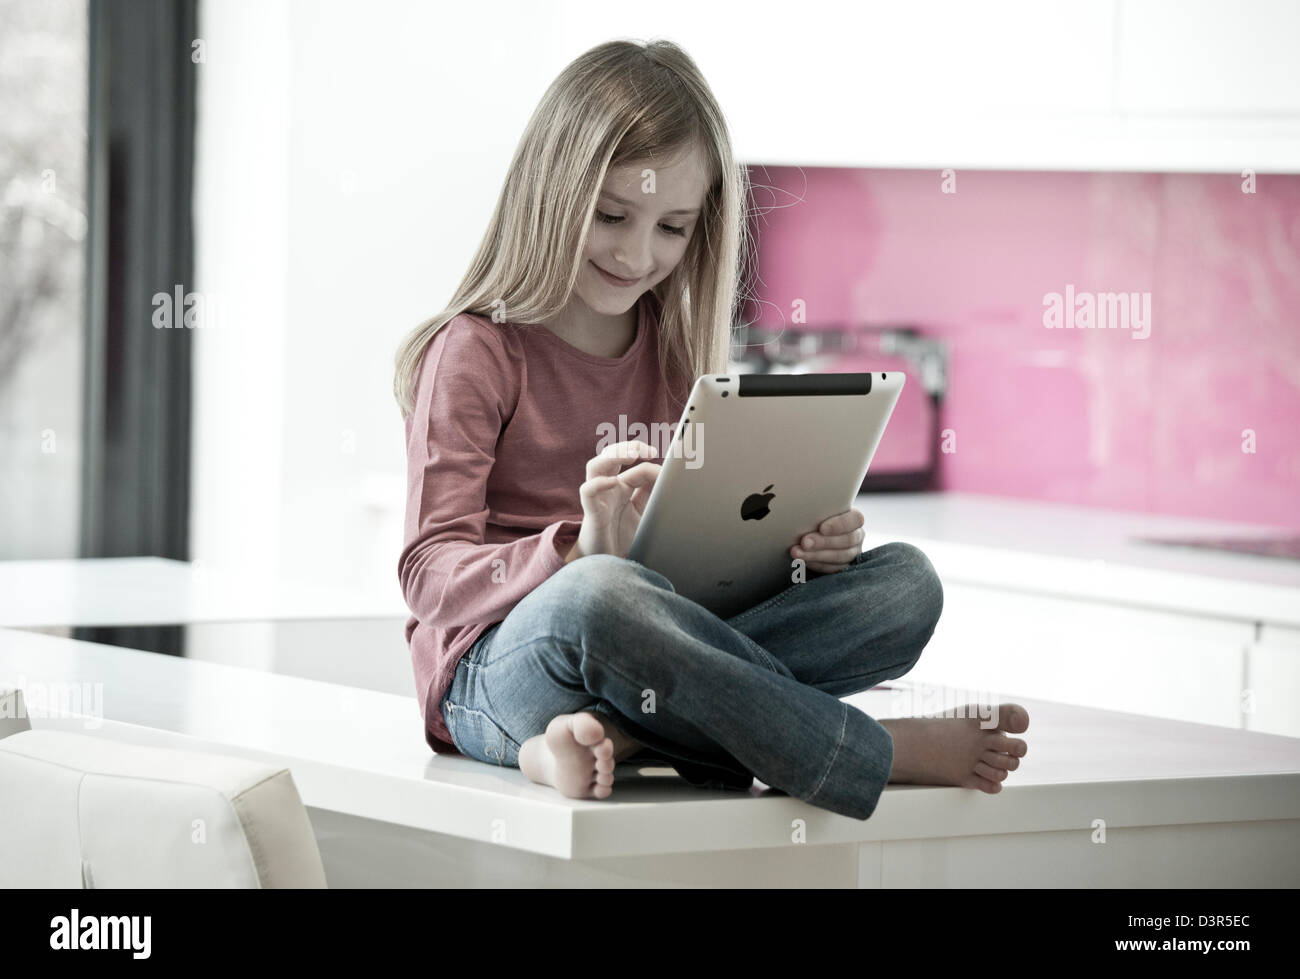 Young girl playing on an apple iPad tablet computer - Stock Image